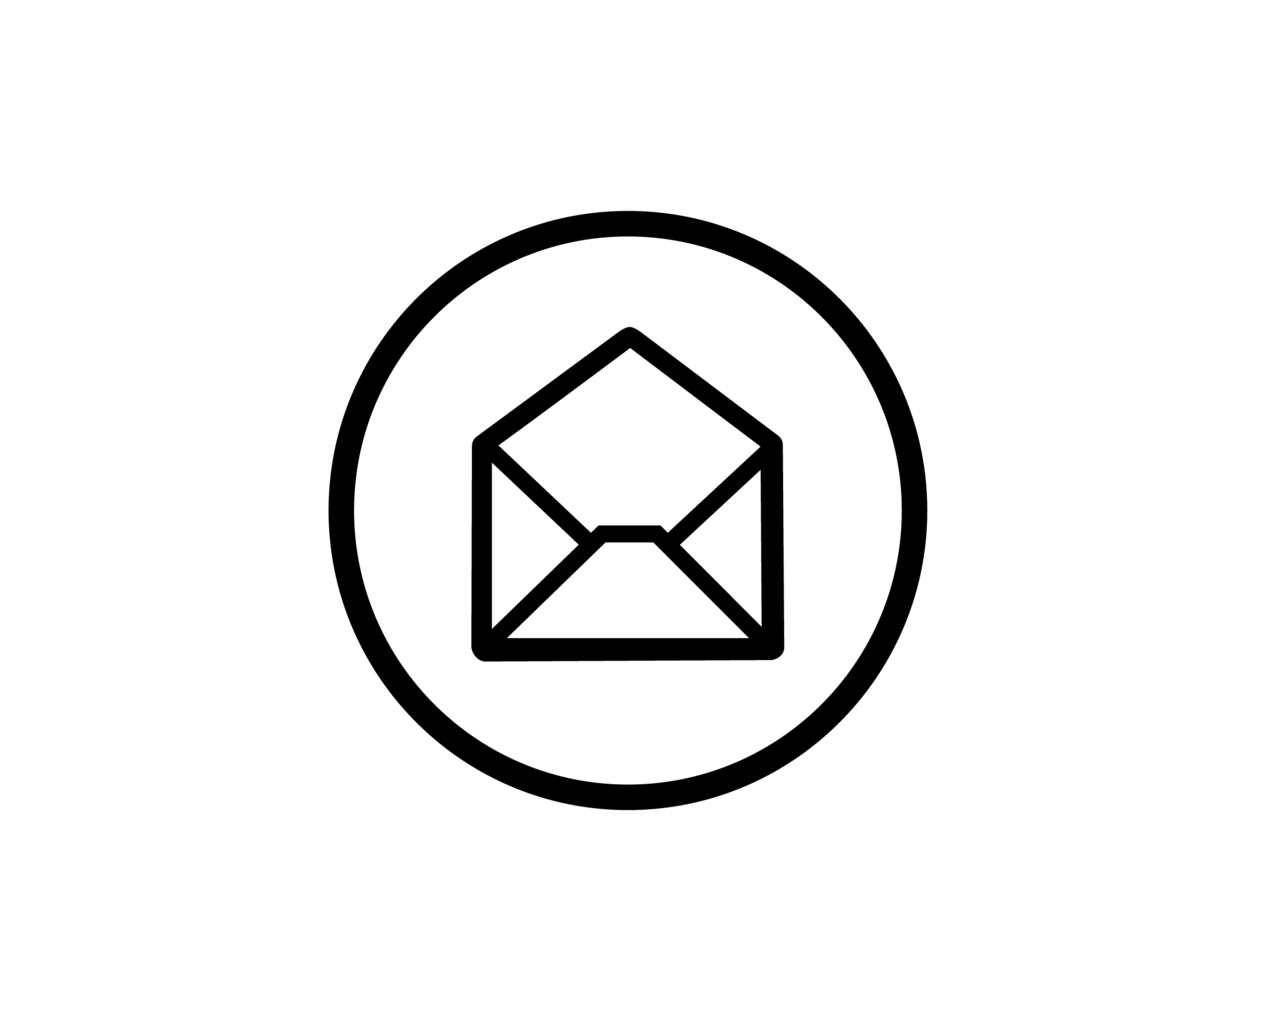 Email-Icon, Email senden an Verlag